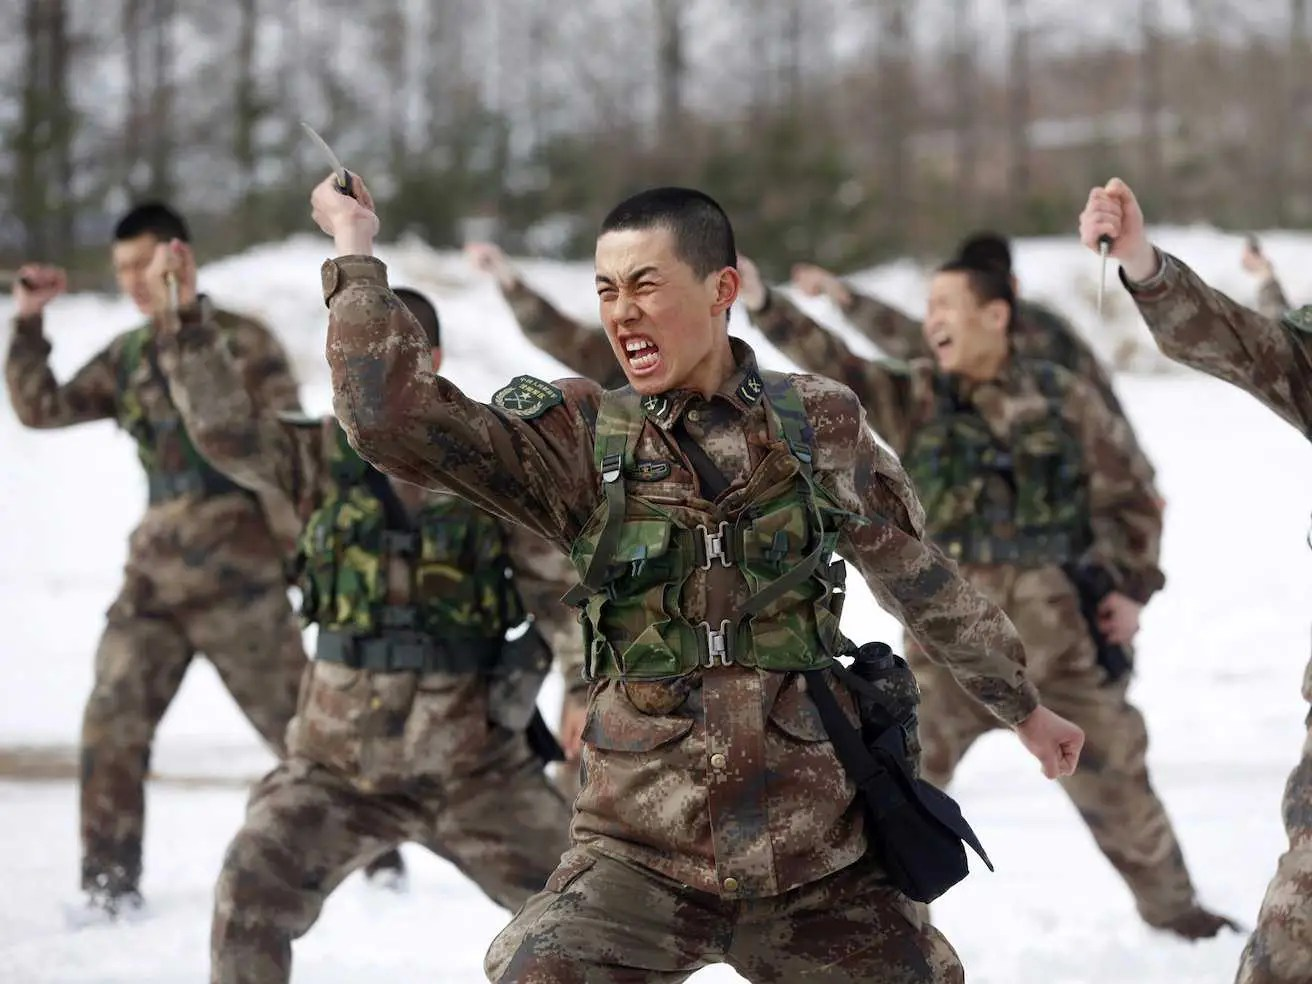 People's Liberation Army (PLA) soldiers shout as they practise with knives during a training session on snow-covered ground at a military base in Heihe, Heilongjiang province March 18, 2015.  Read more: http://www.businessinsider.com/china-just-revealed-a-terrifying-new-cyberweapon-2015-4#ixzz3X80CjiUE